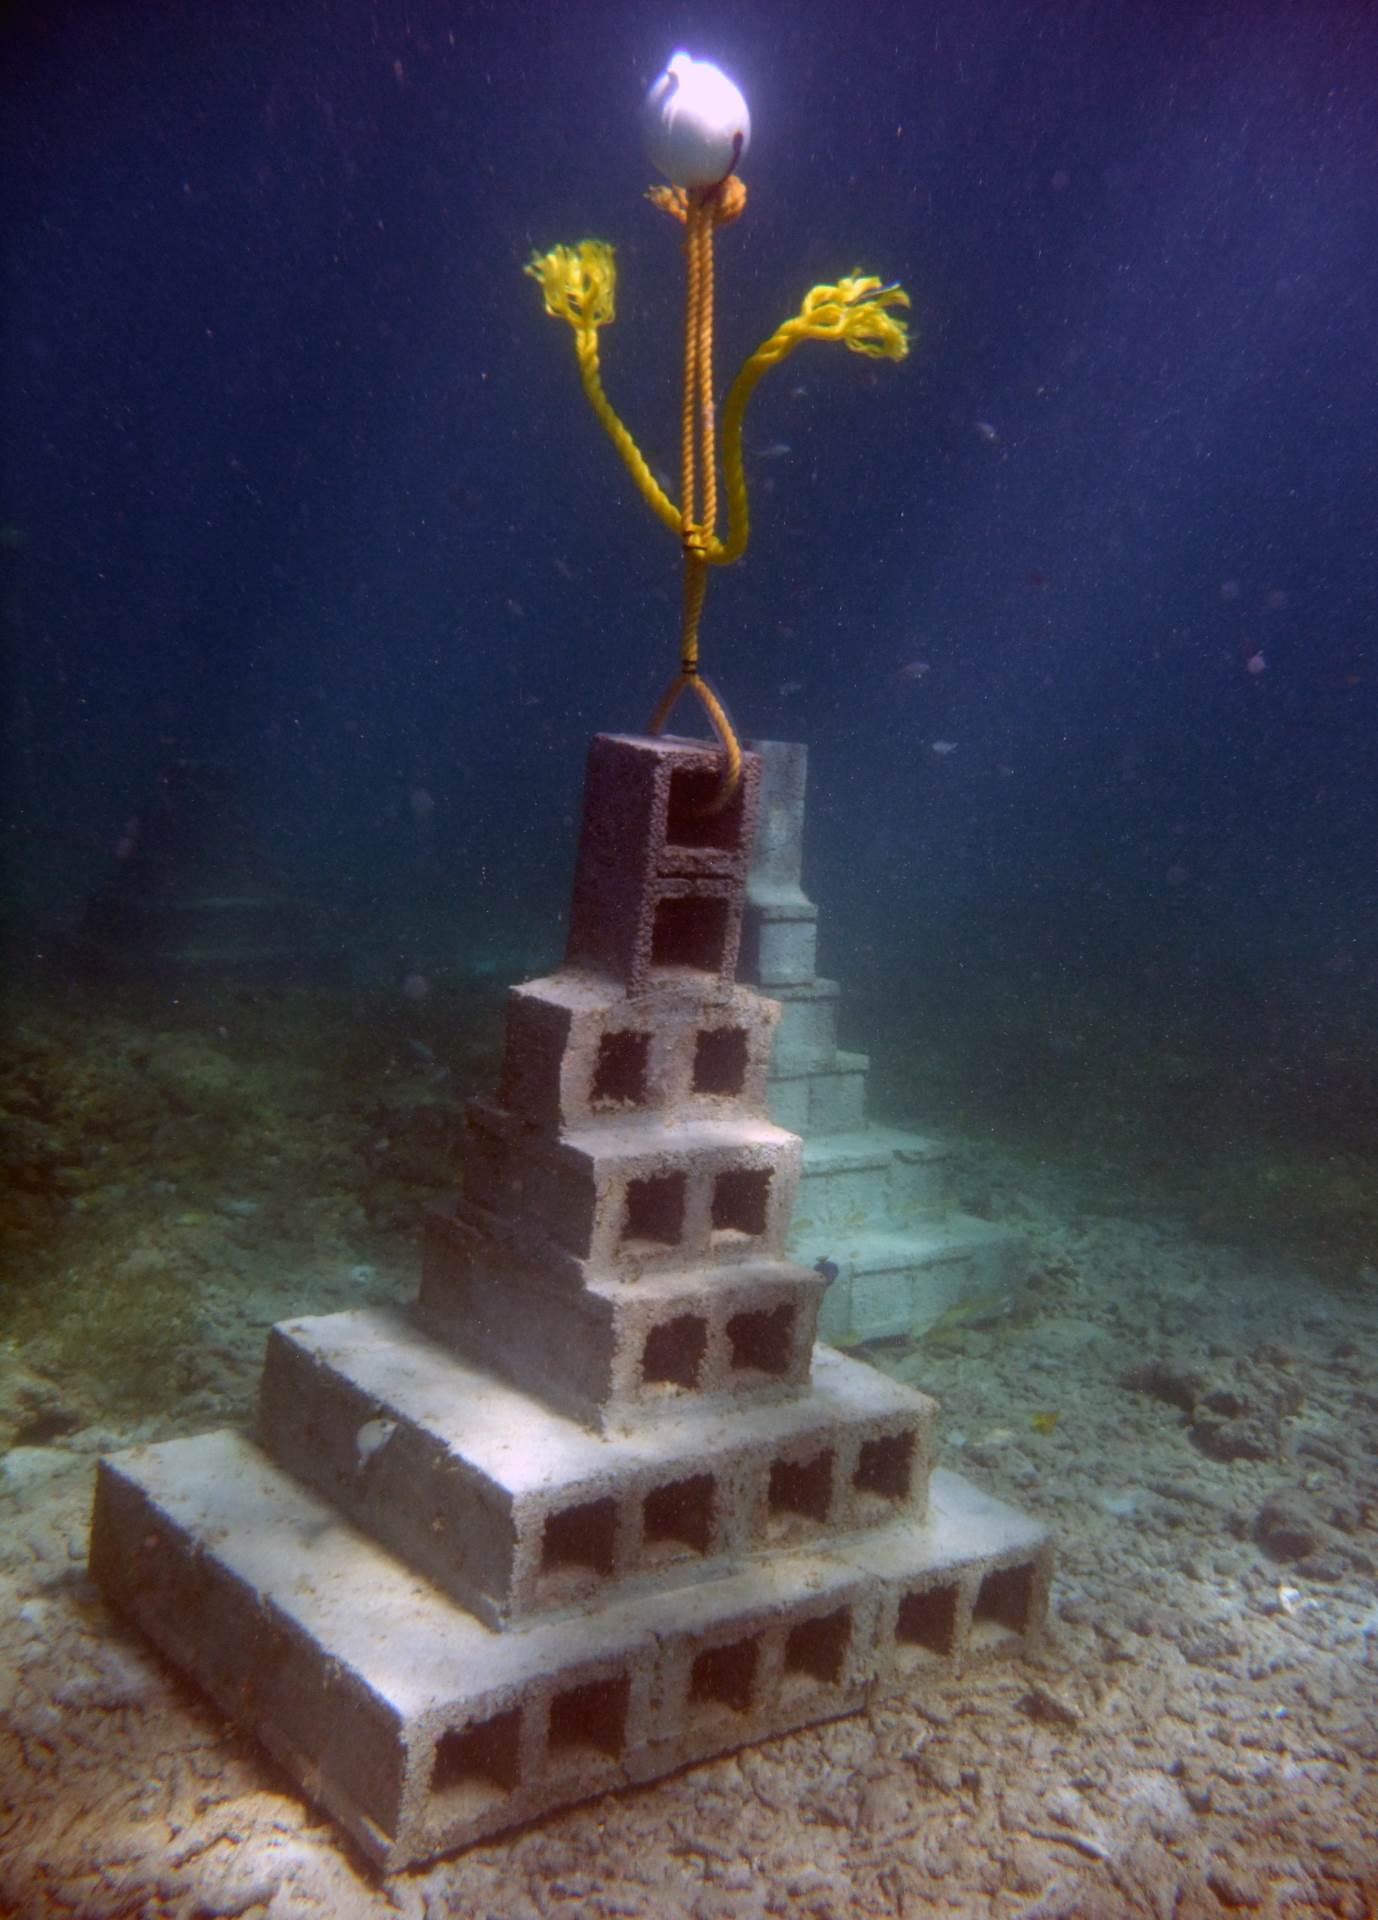 The pyramid design was used because it creates a stable platform in shallow water. Fish, corals, sponges and other types of marine life are expected to quickly propagate the artificial reef.